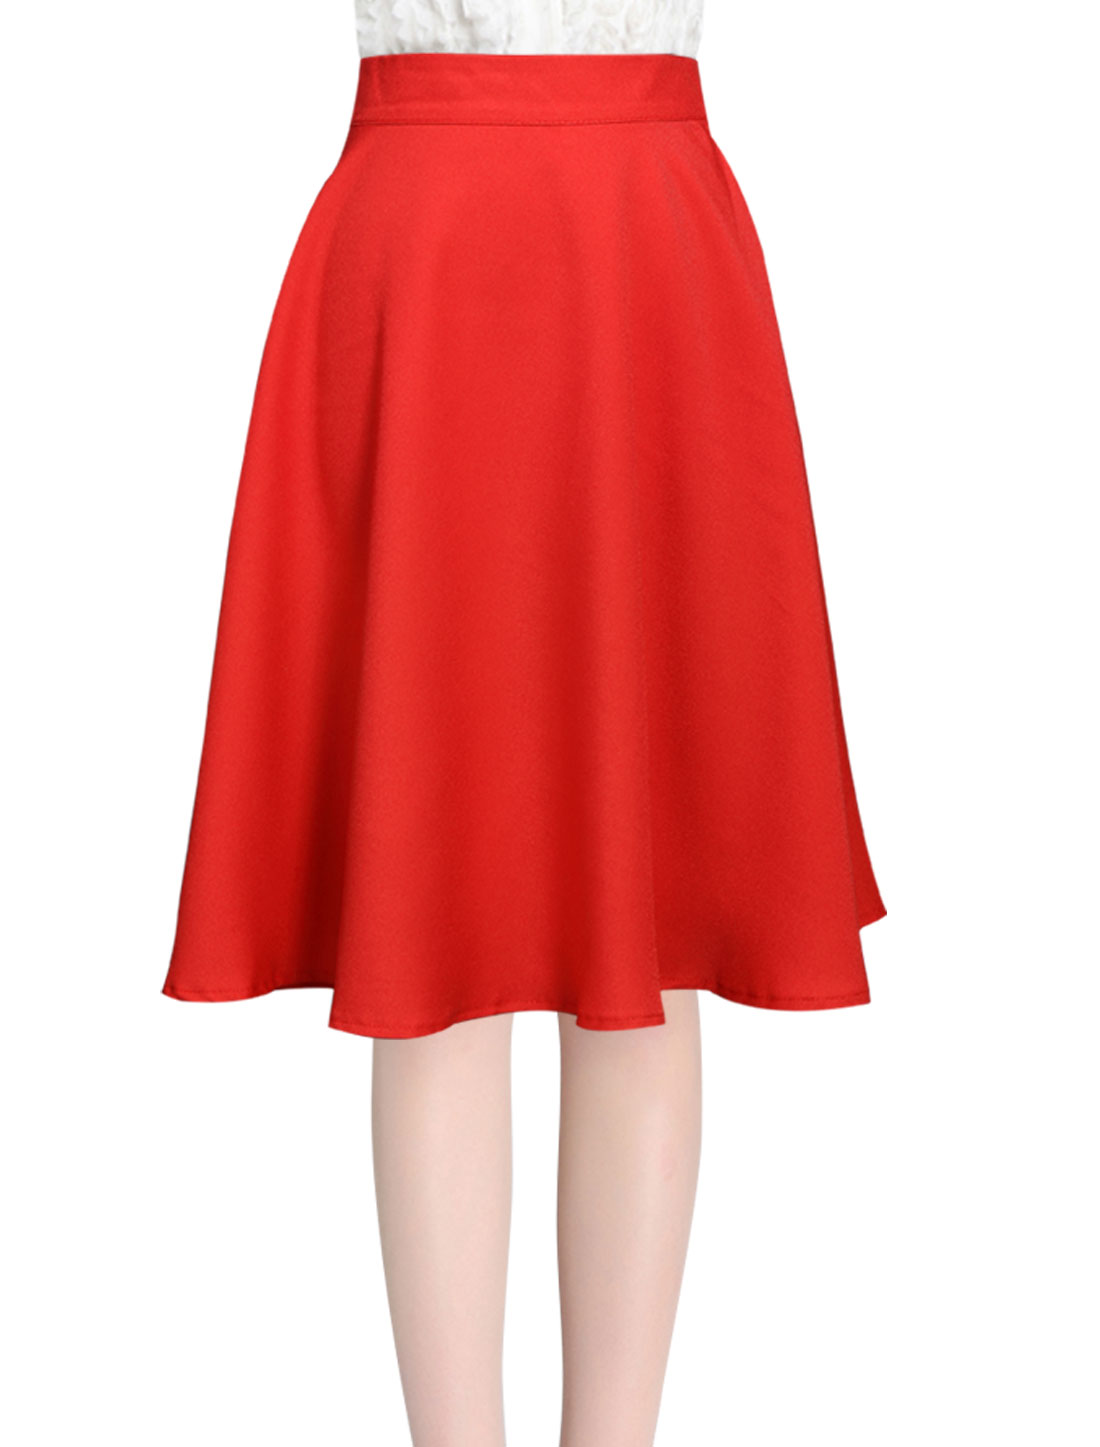 Women Unlined Knee Length Flouncing Hem Fashion Full Skirt Red XL